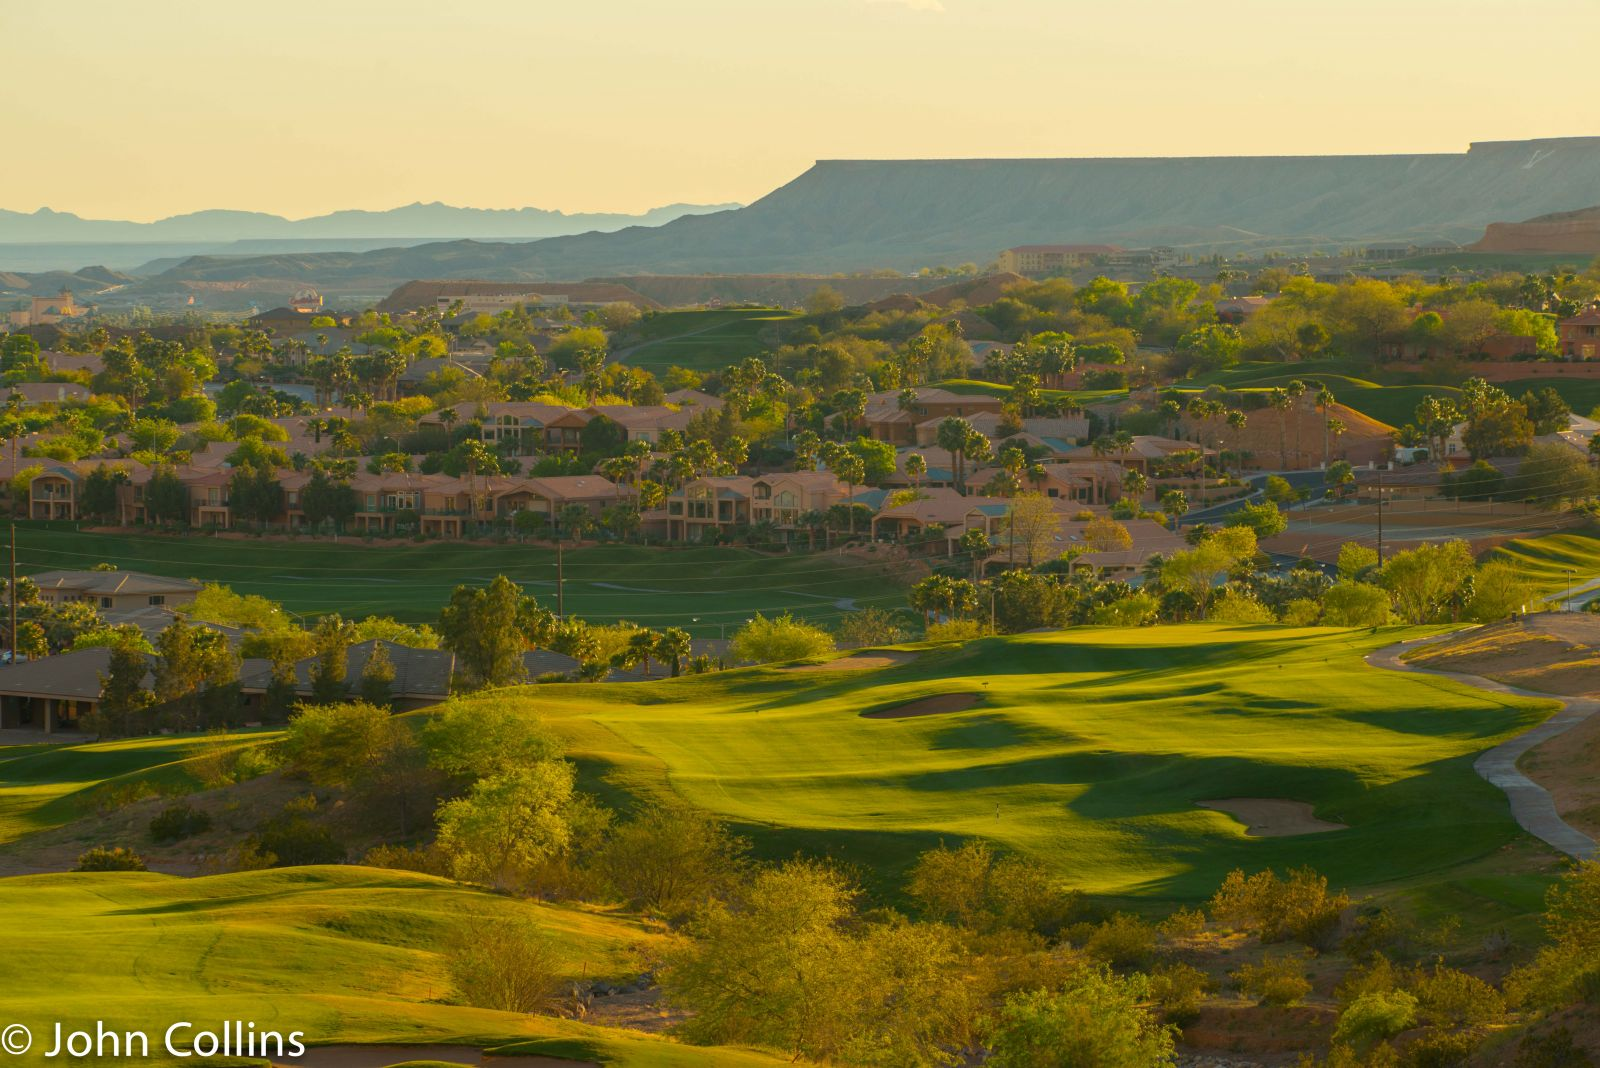 Aerial view of Oasis Golf Club in Mesquite